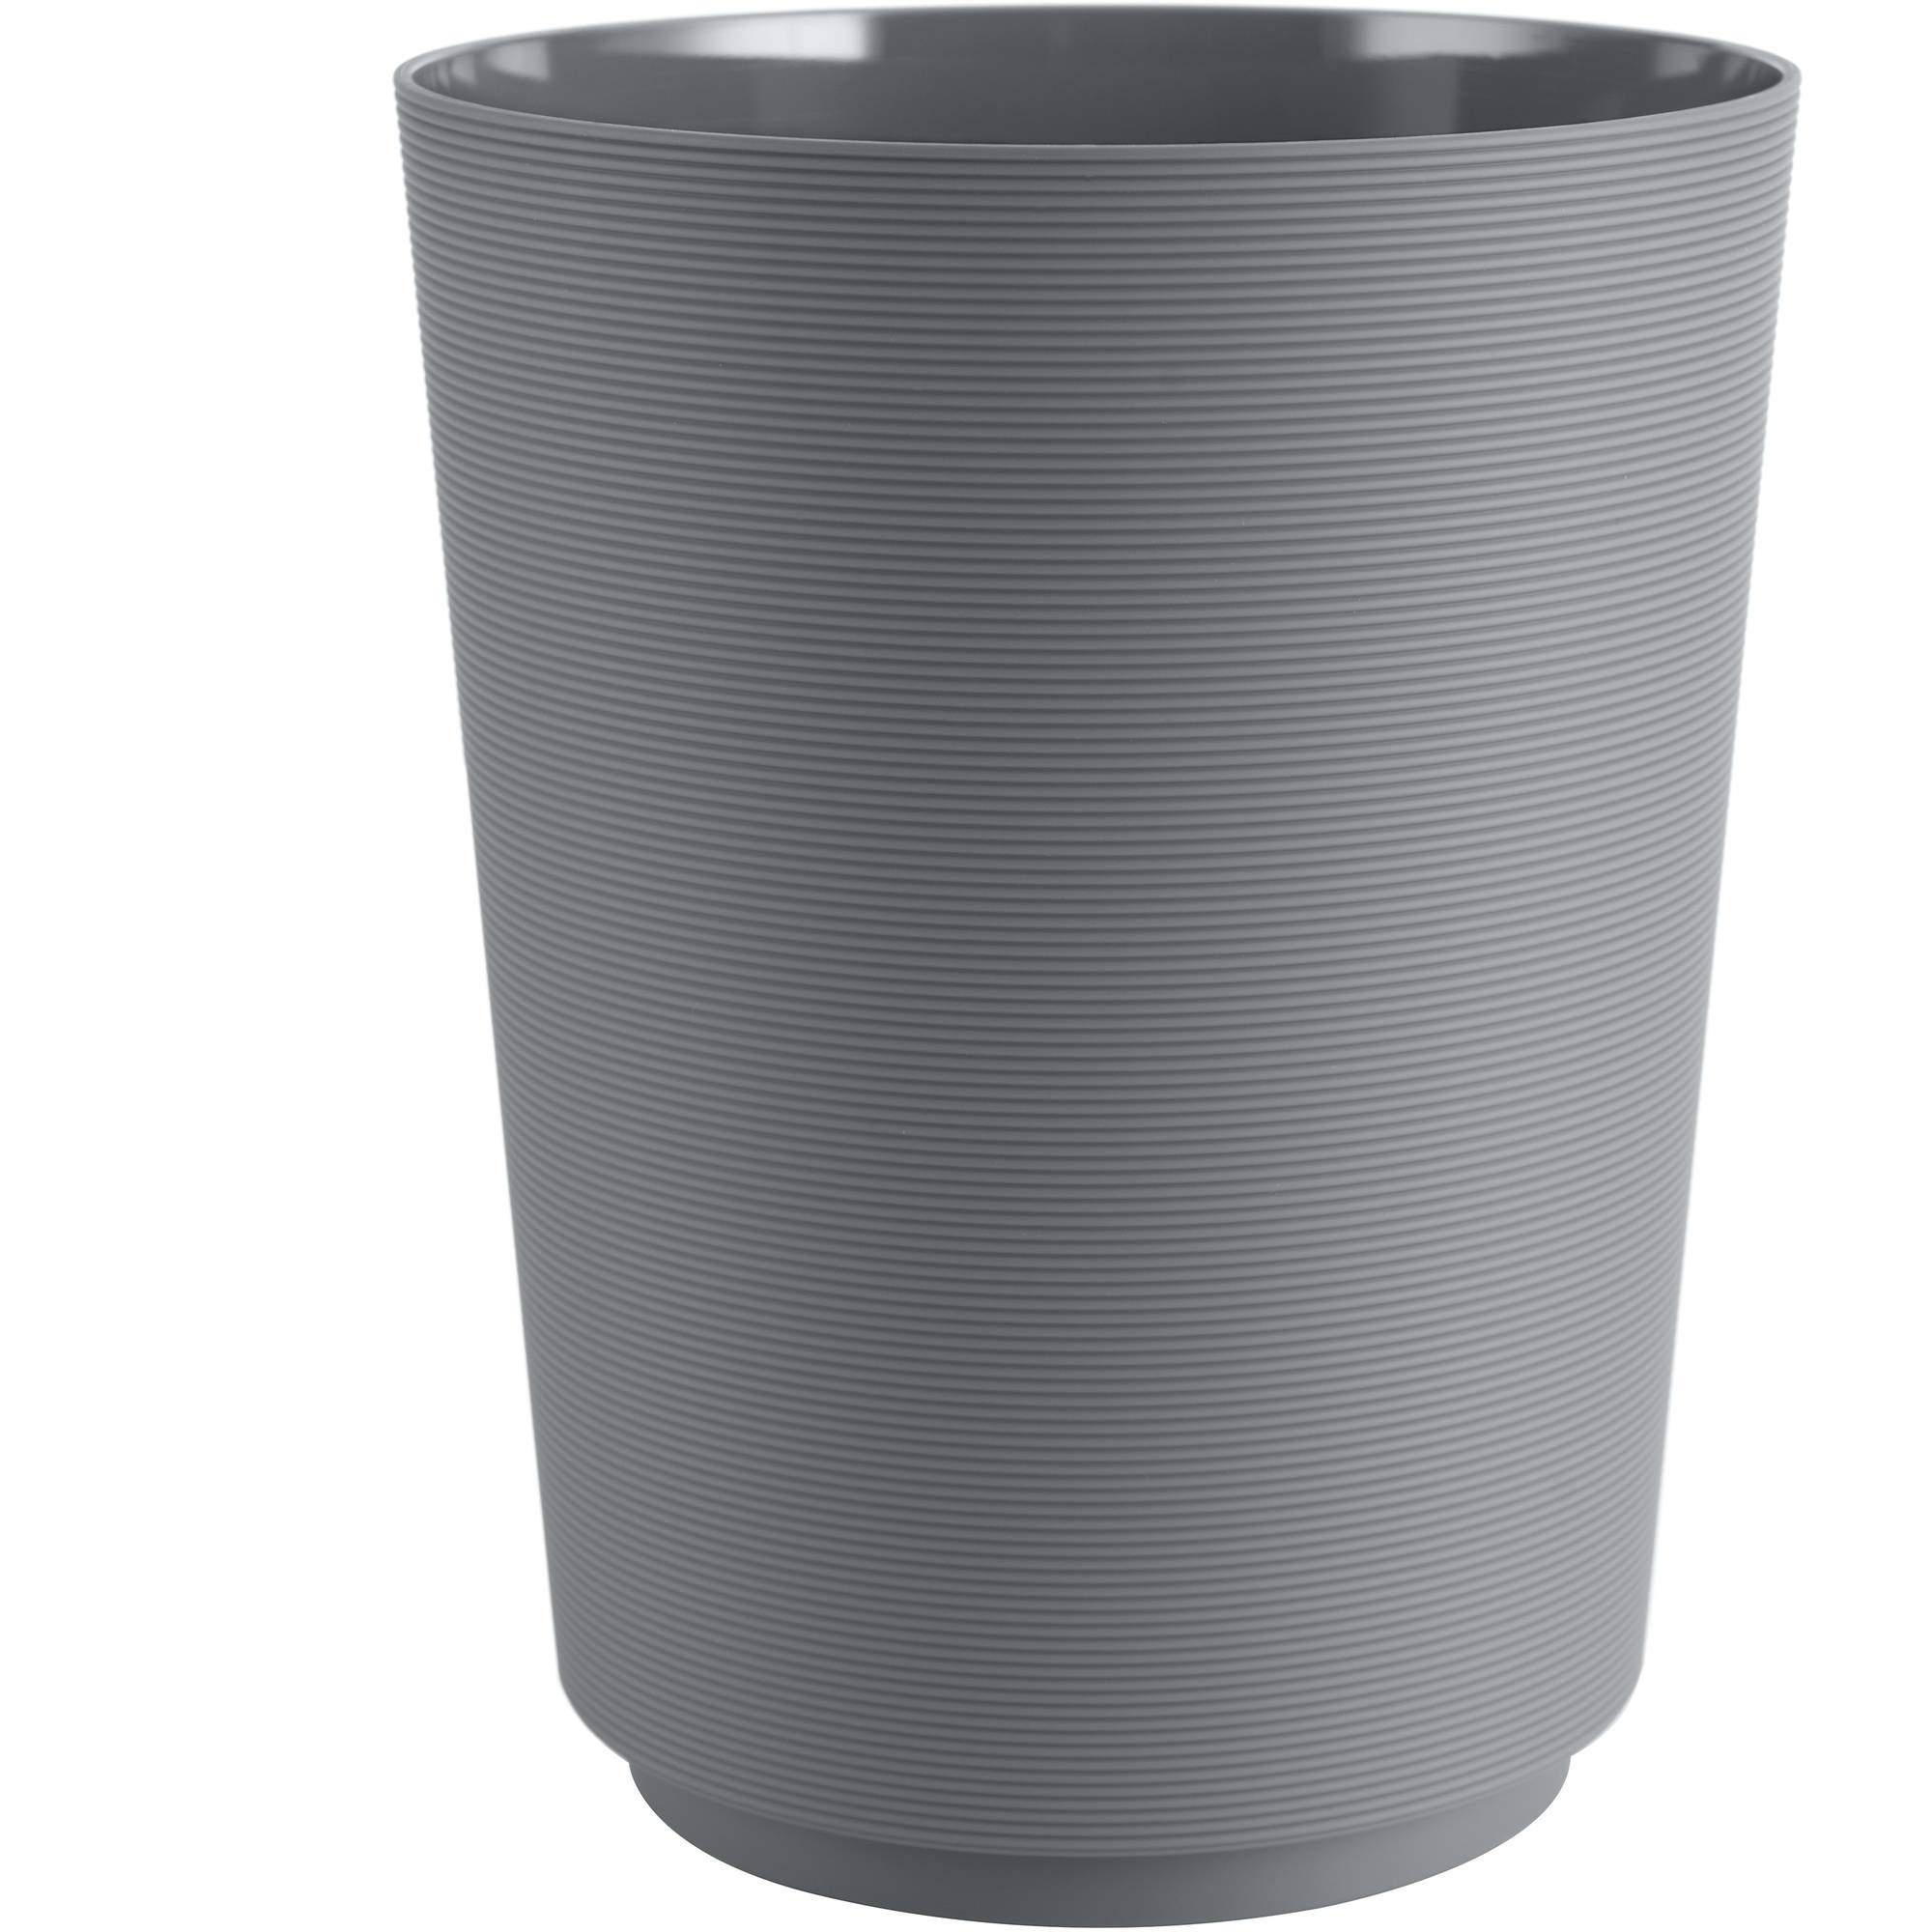 Mainstays Soft Touch Grey Plastic Wastebasket